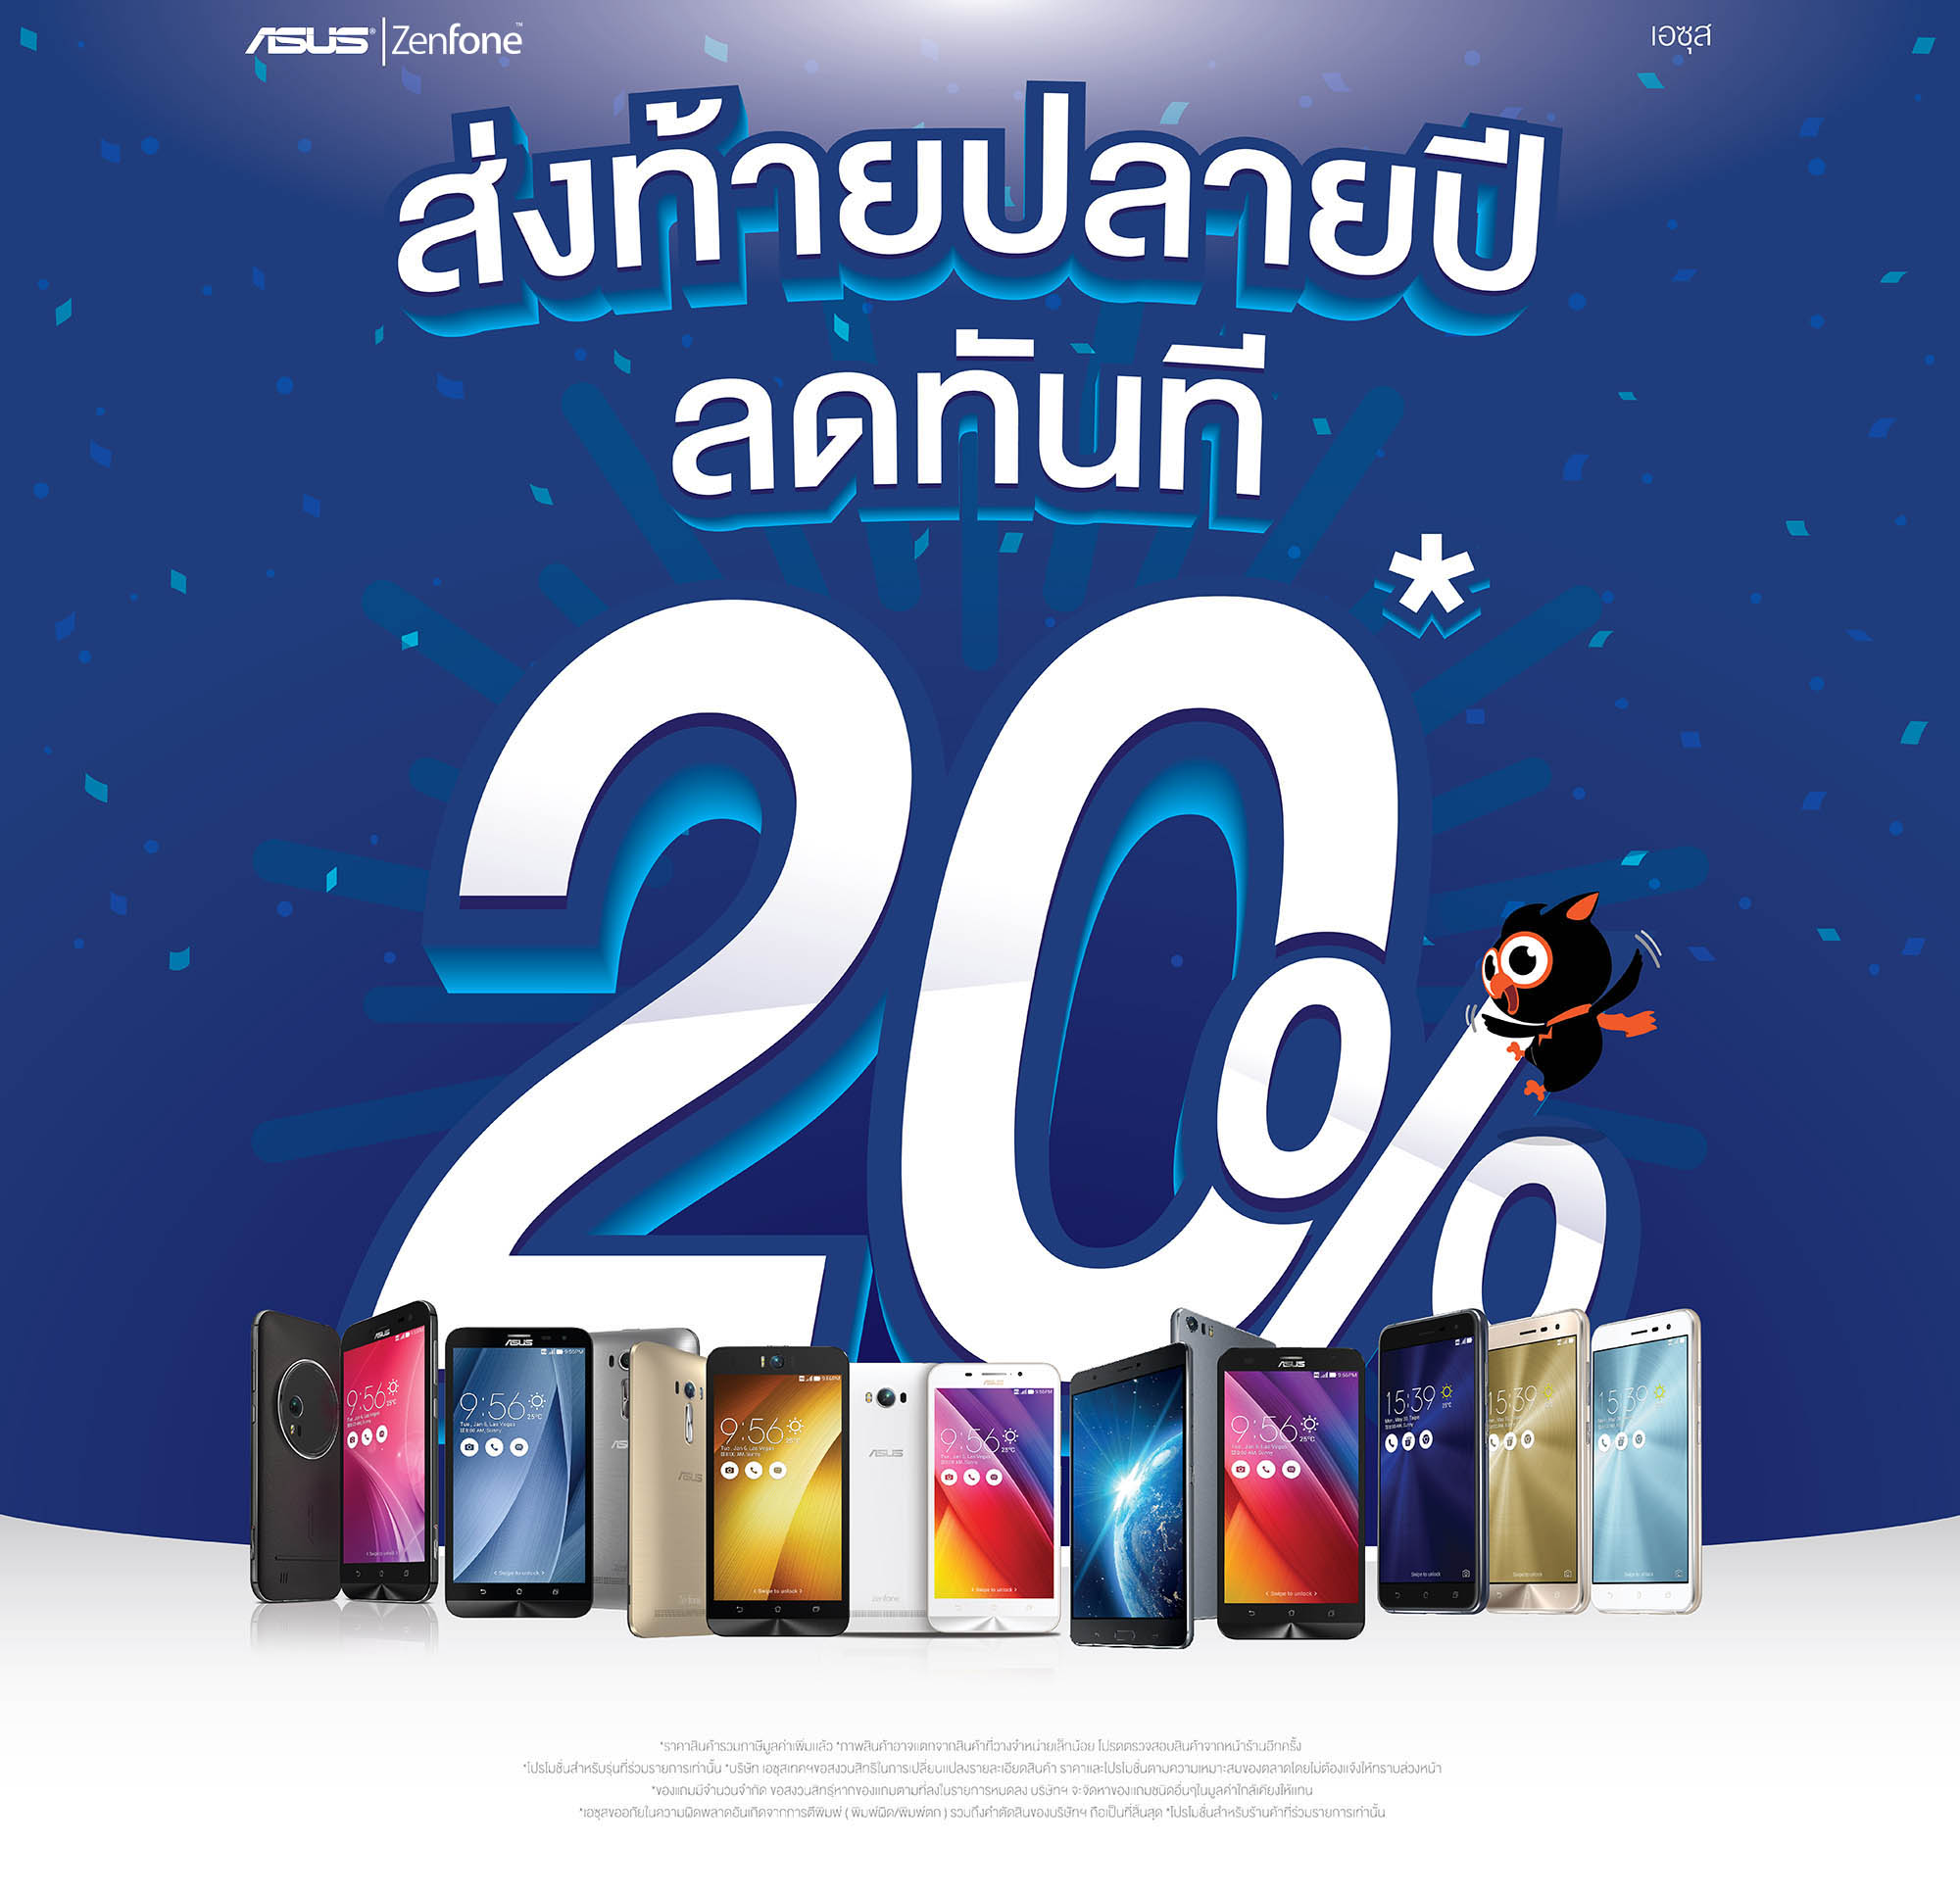 Asus Promotion for Thailand Mobile Expo 2017 1